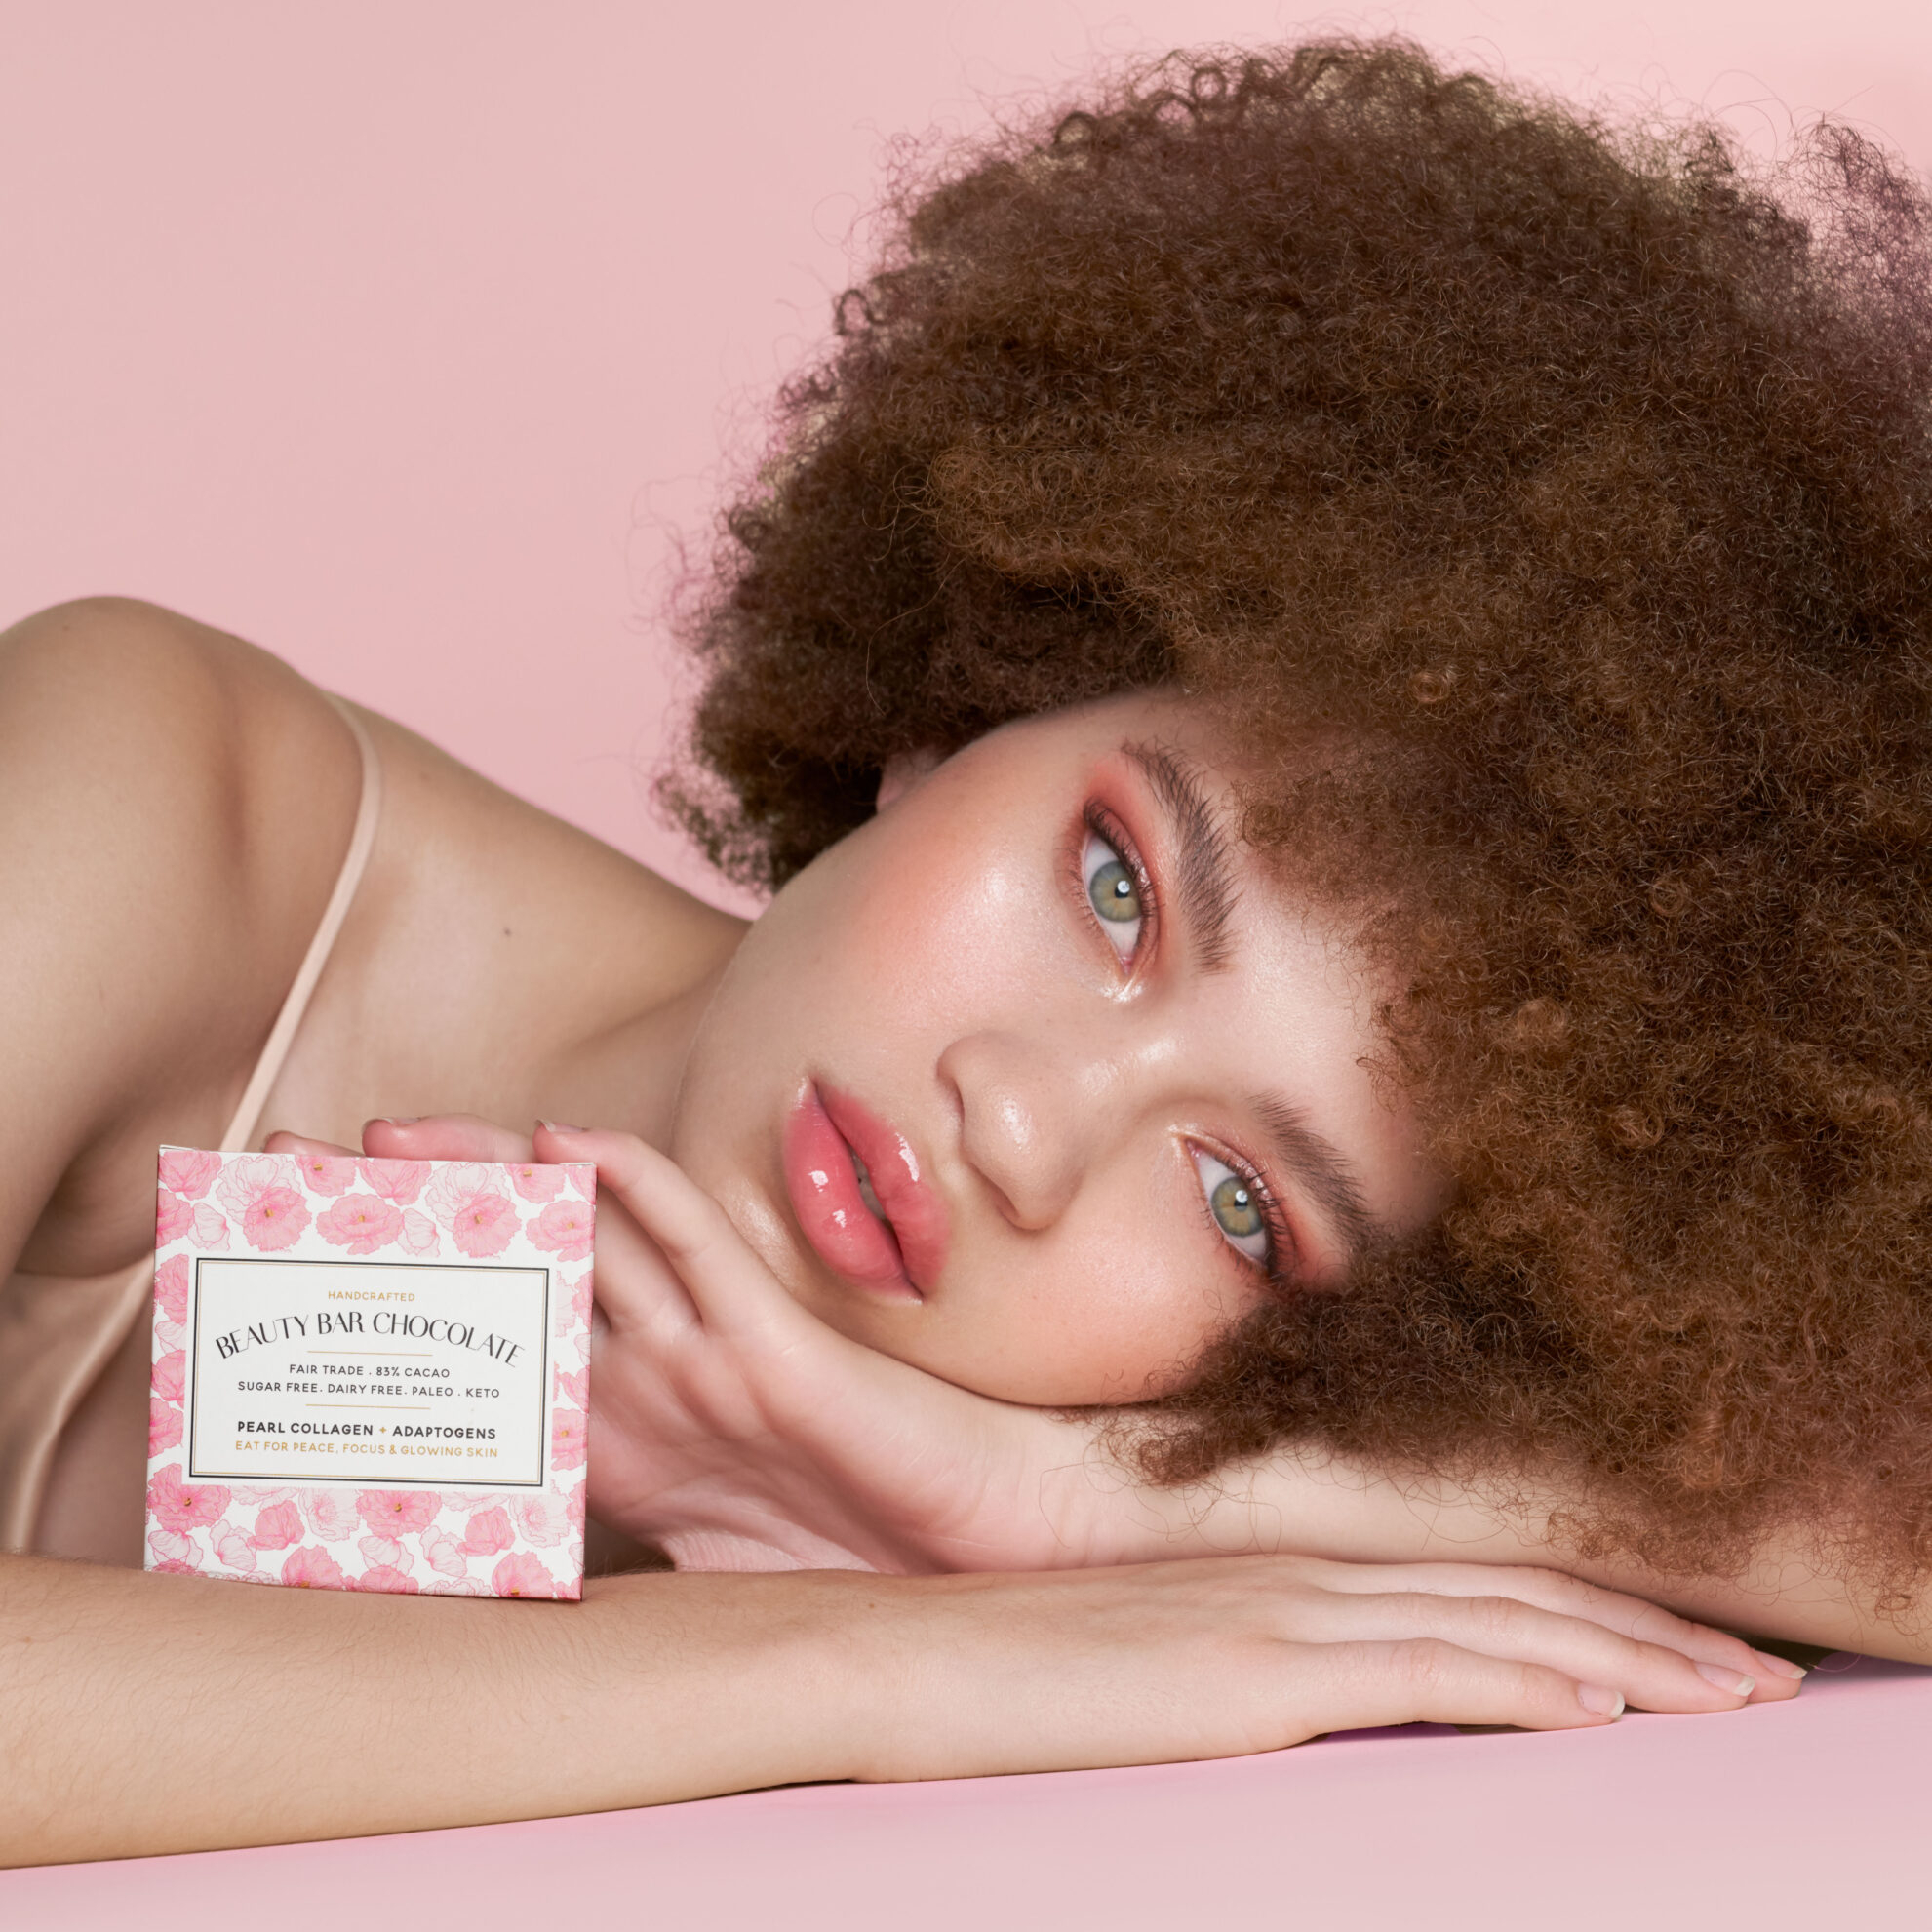 Beauty Bar Chocolate Image Nailed It Women laying on arm with pink chocolate box on pink backdrop